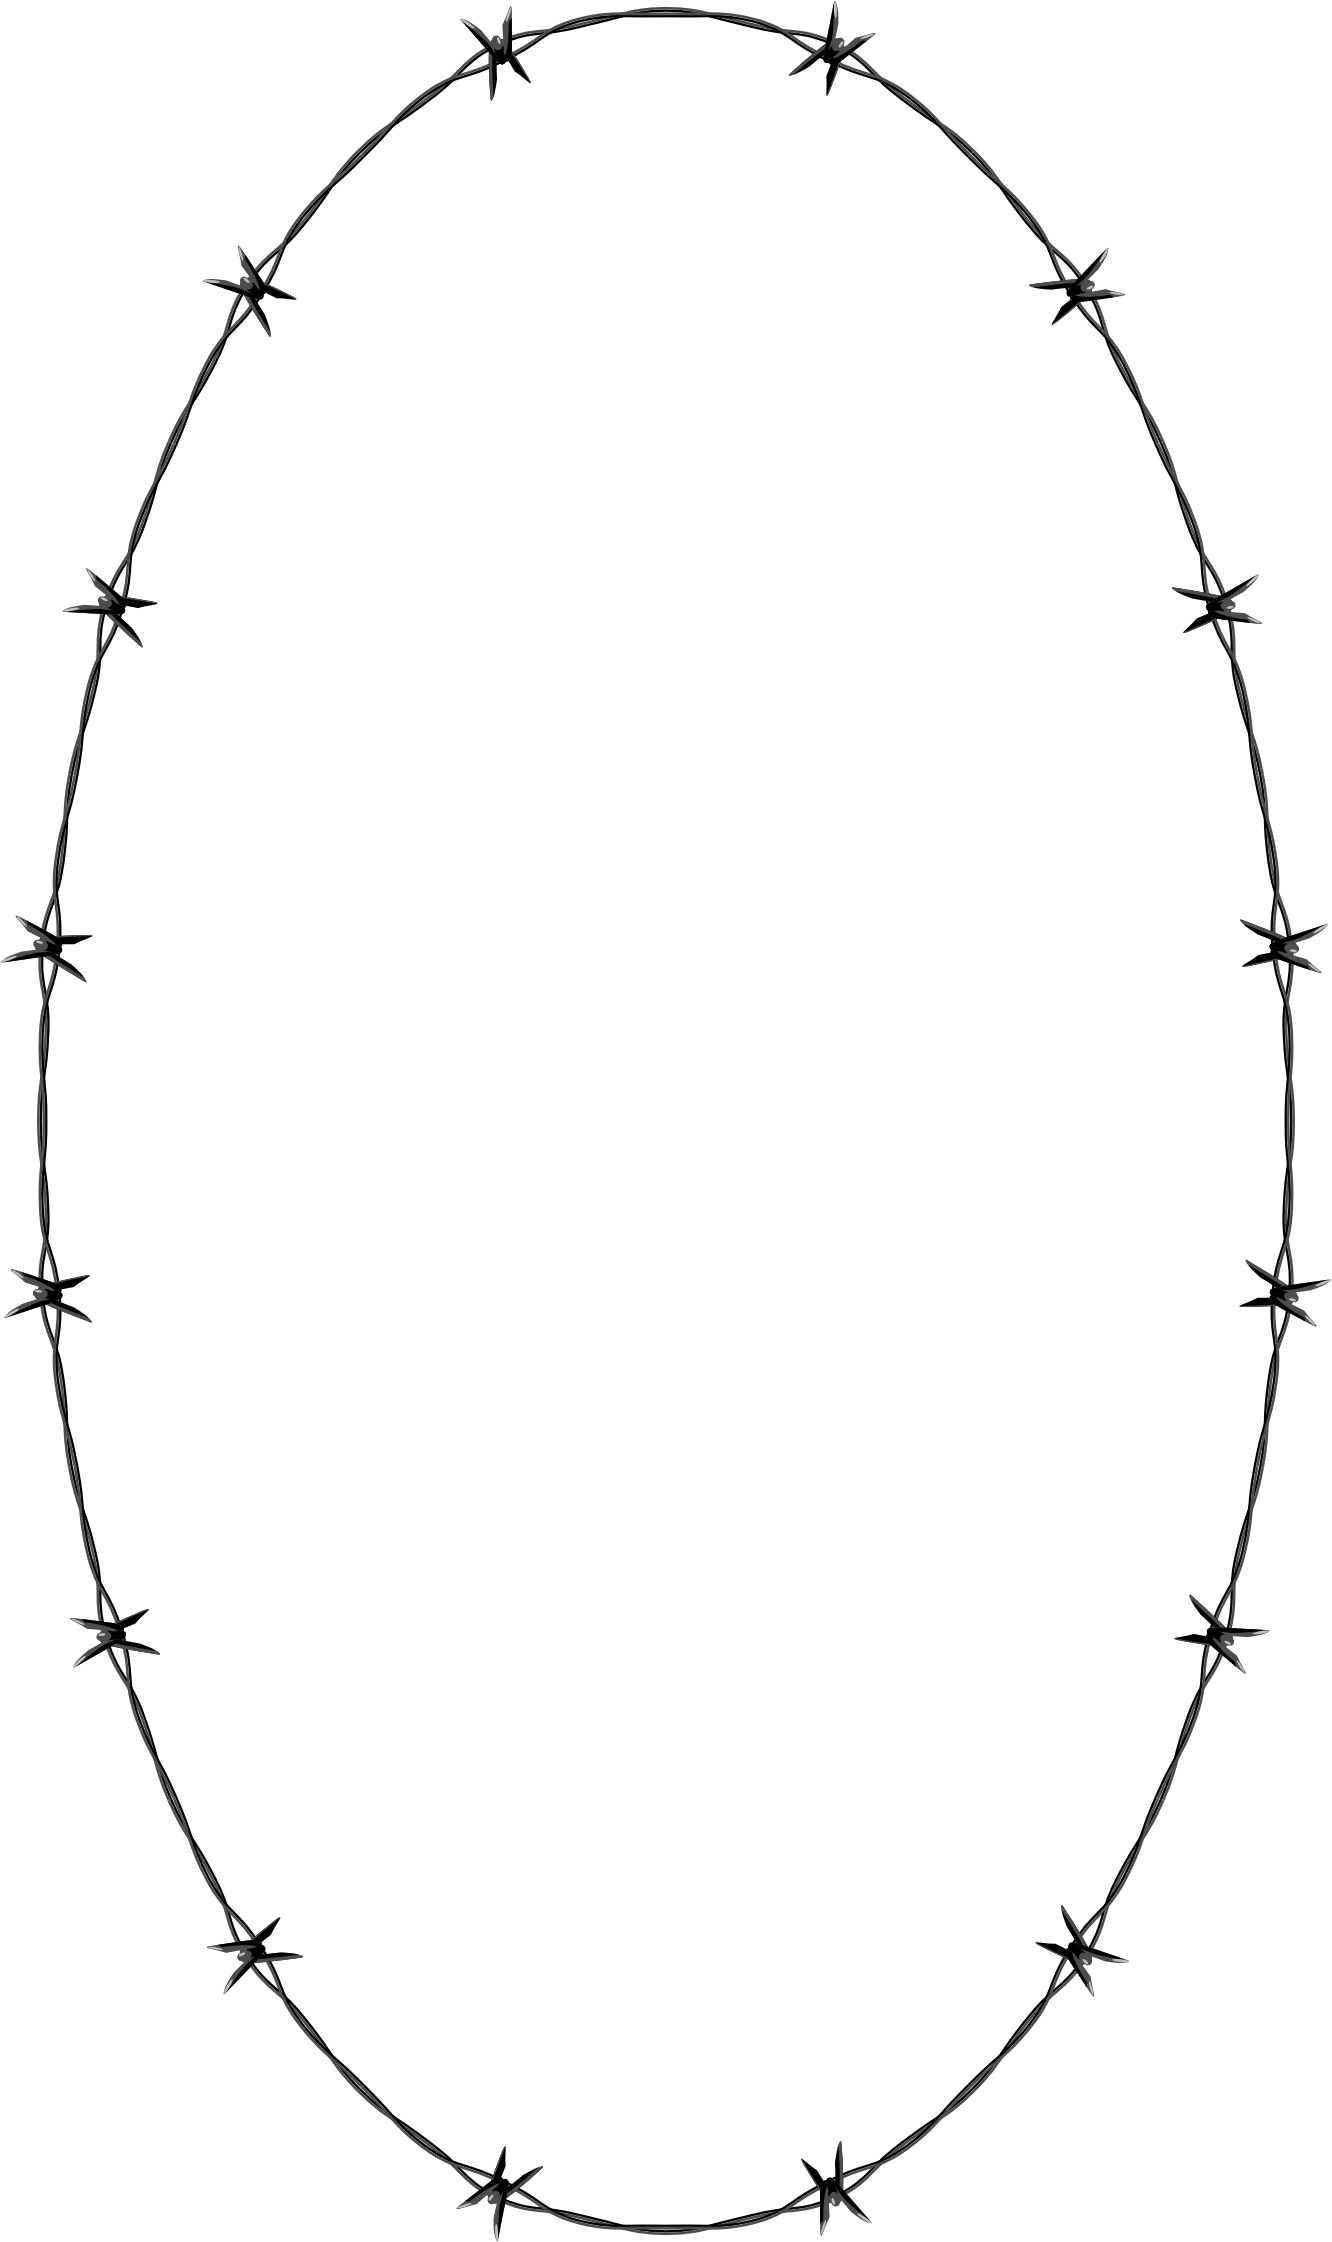 Barbed wire frame border. Oval clipart ellipse